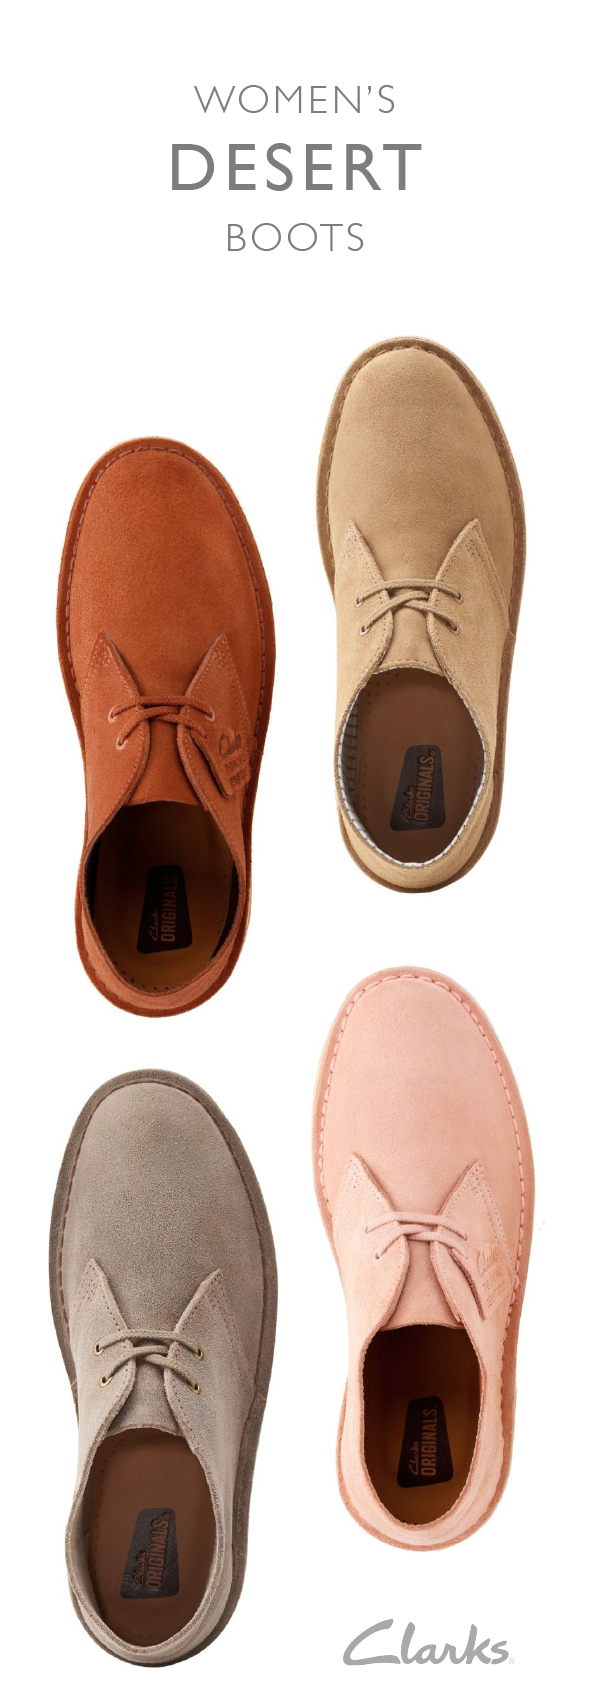 sale retailer 30005 eed82 Since arriving in 1949, the iconic Desert Boot has brought comfort and  style to people around the world. With its clean and elegant design, its a  versatile ...